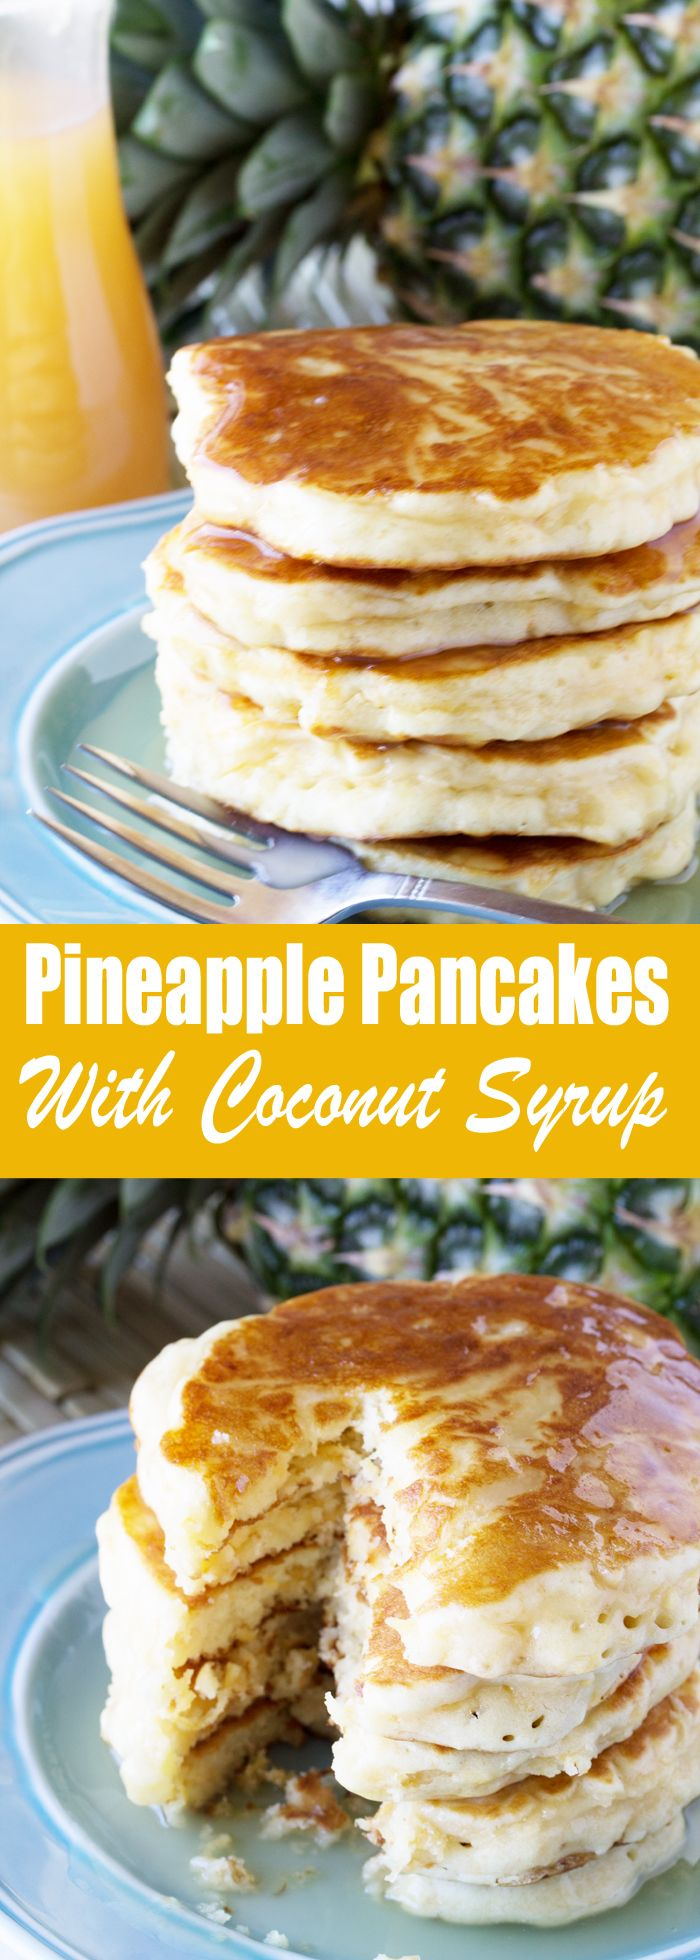 Enjoy the blend of tropical flavors in these delicious Pineapple Pancakes with Coconut Syrup. Give your morning the island treatment!